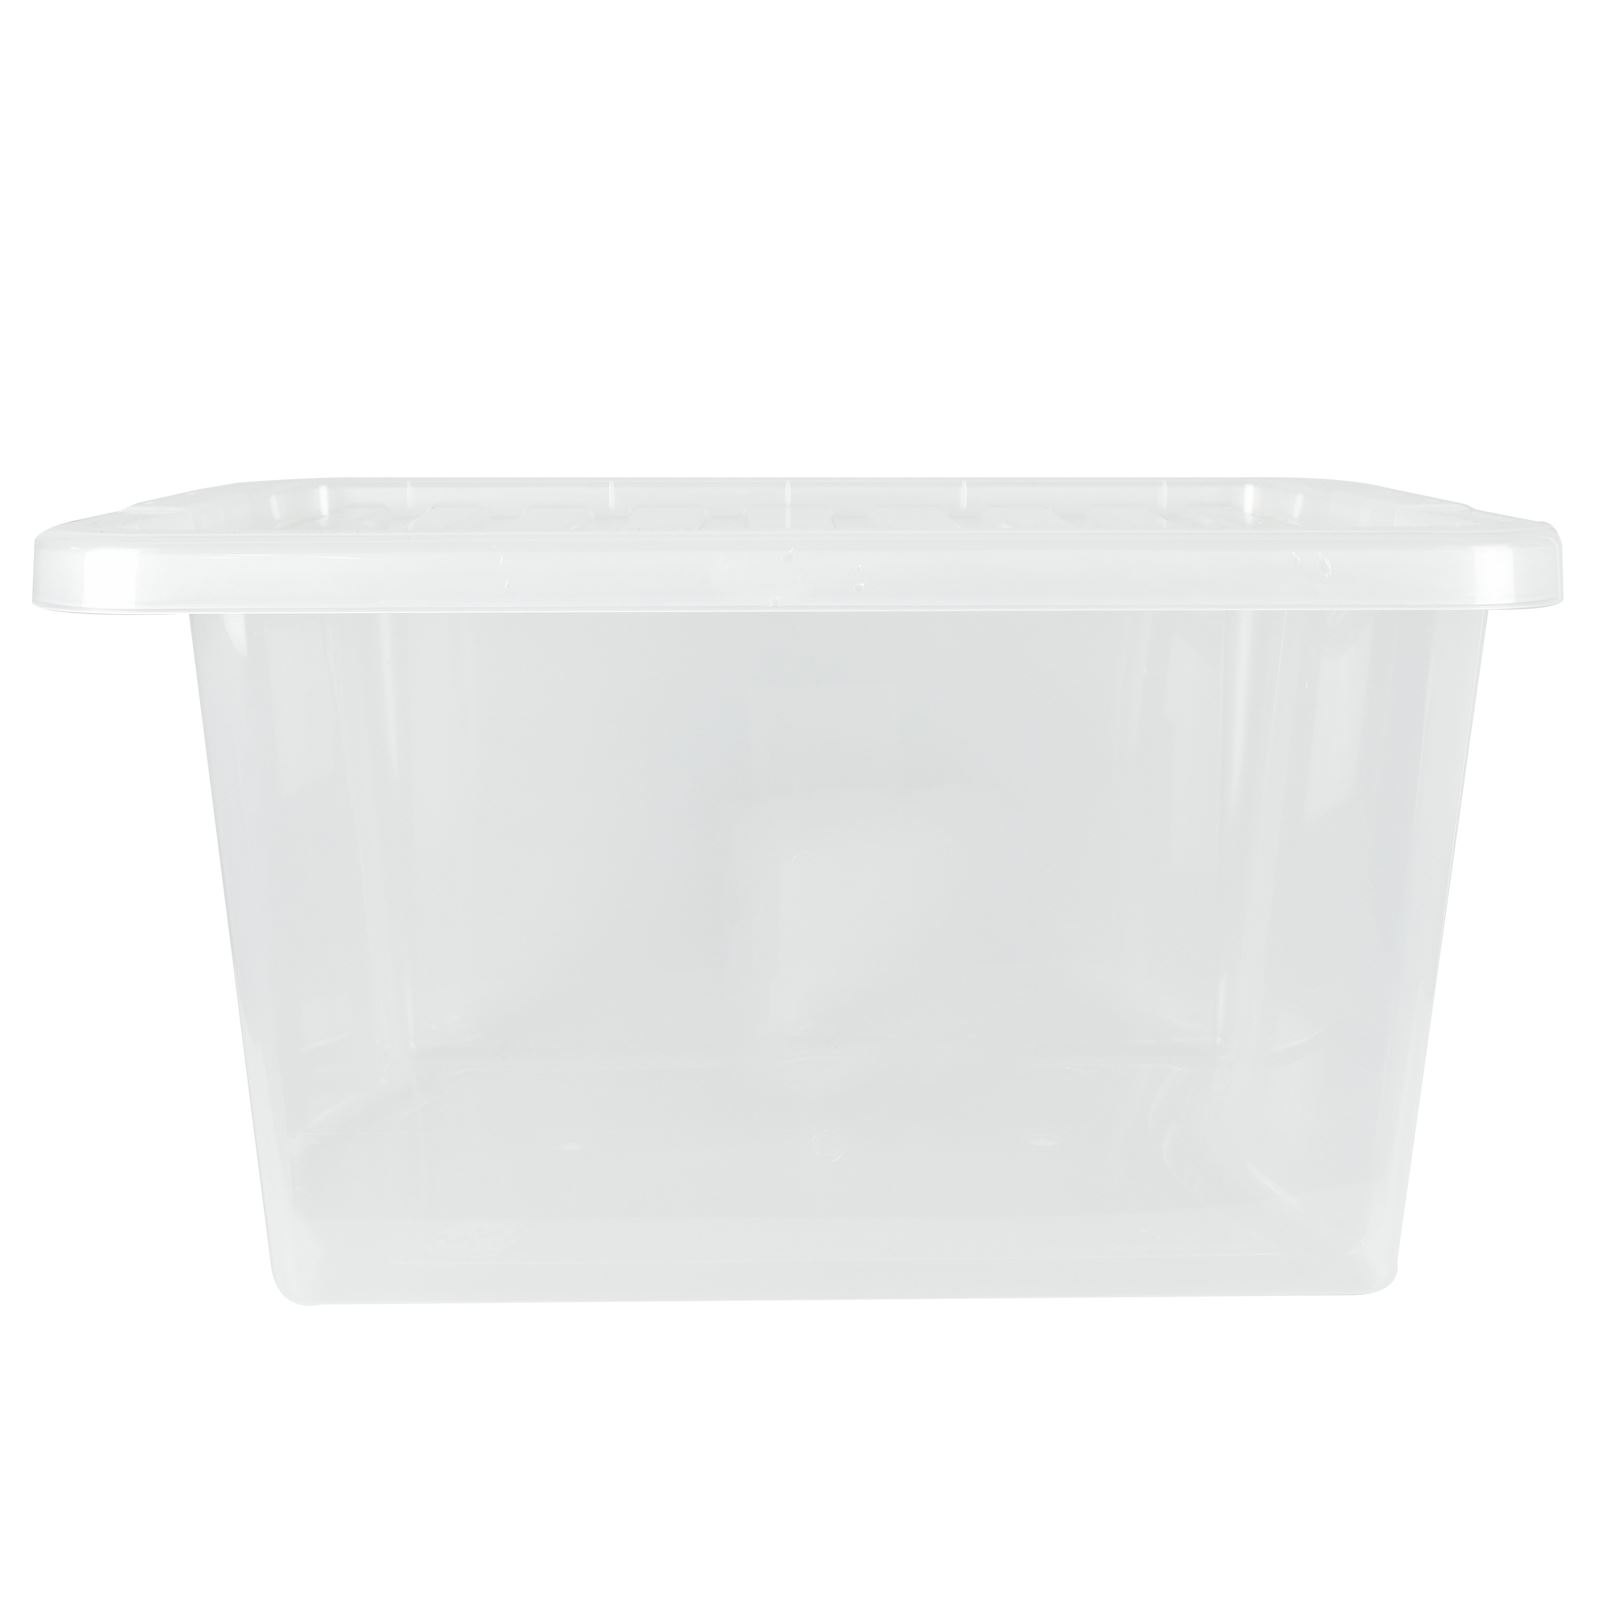 Wham-Crystal-Clear-Plastic-Storage-Box-Secure-Clip-on-Lid-Under-Bed-Space-Save thumbnail 17